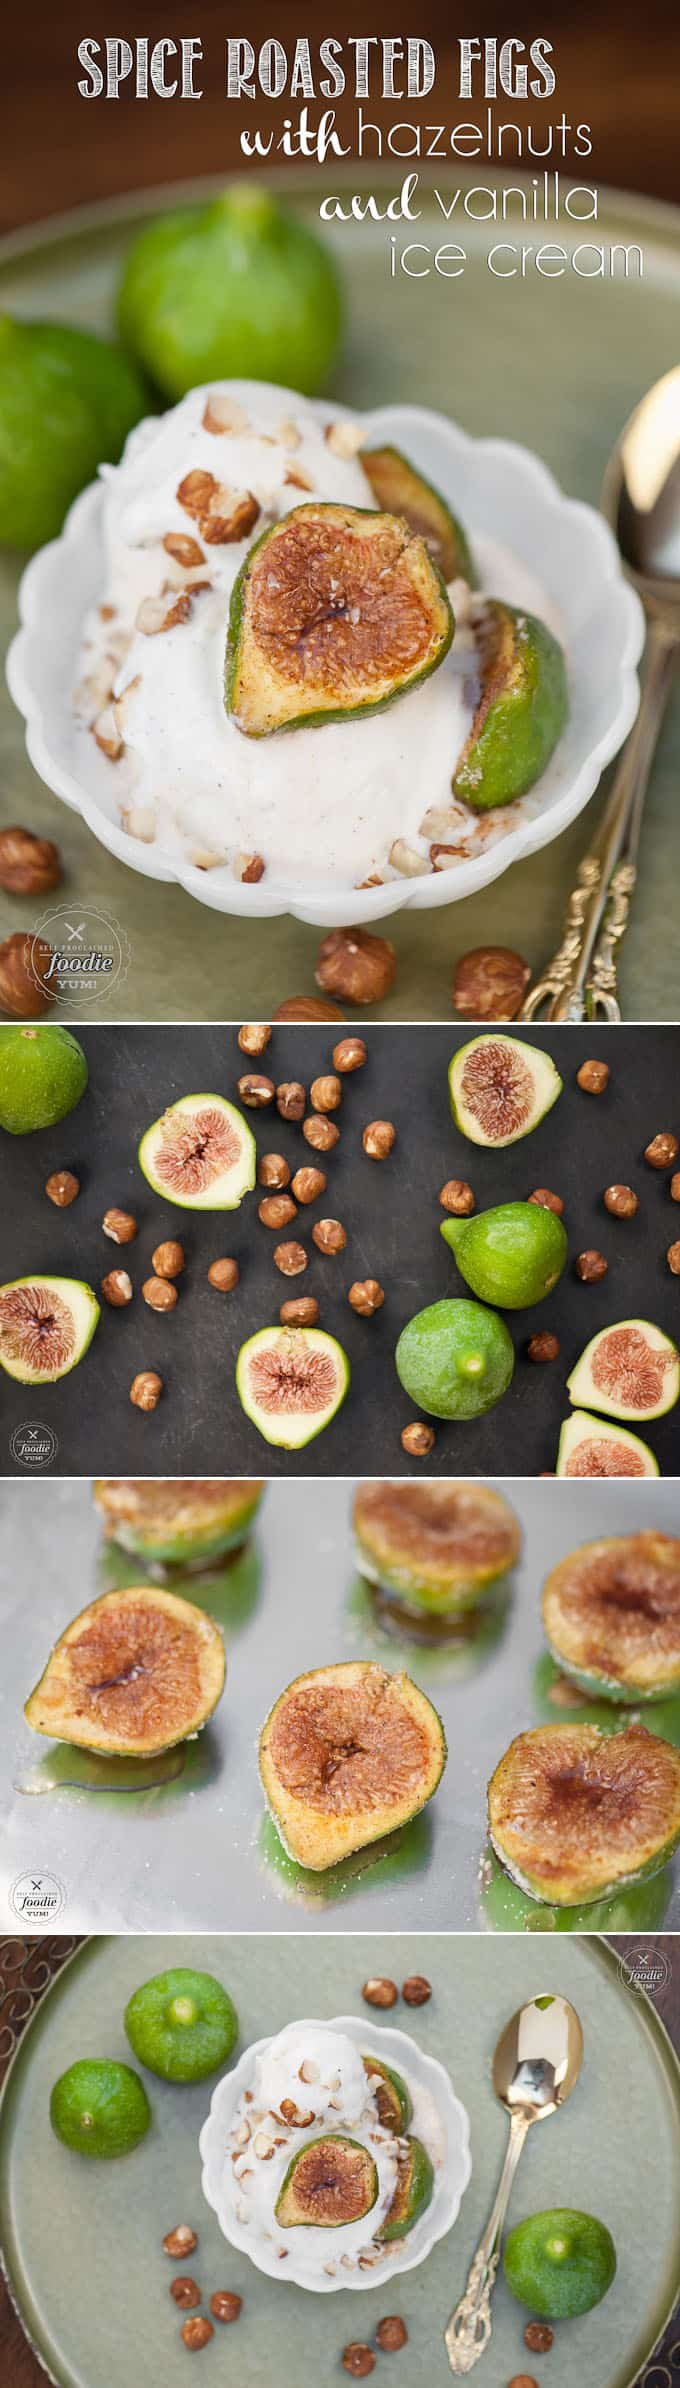 If you are looking for an easy yet sophisticated dessert, Spiced Roasted Figs with Hazelnuts and Vanilla Ice Cream are simply elegant as well as super tasty!